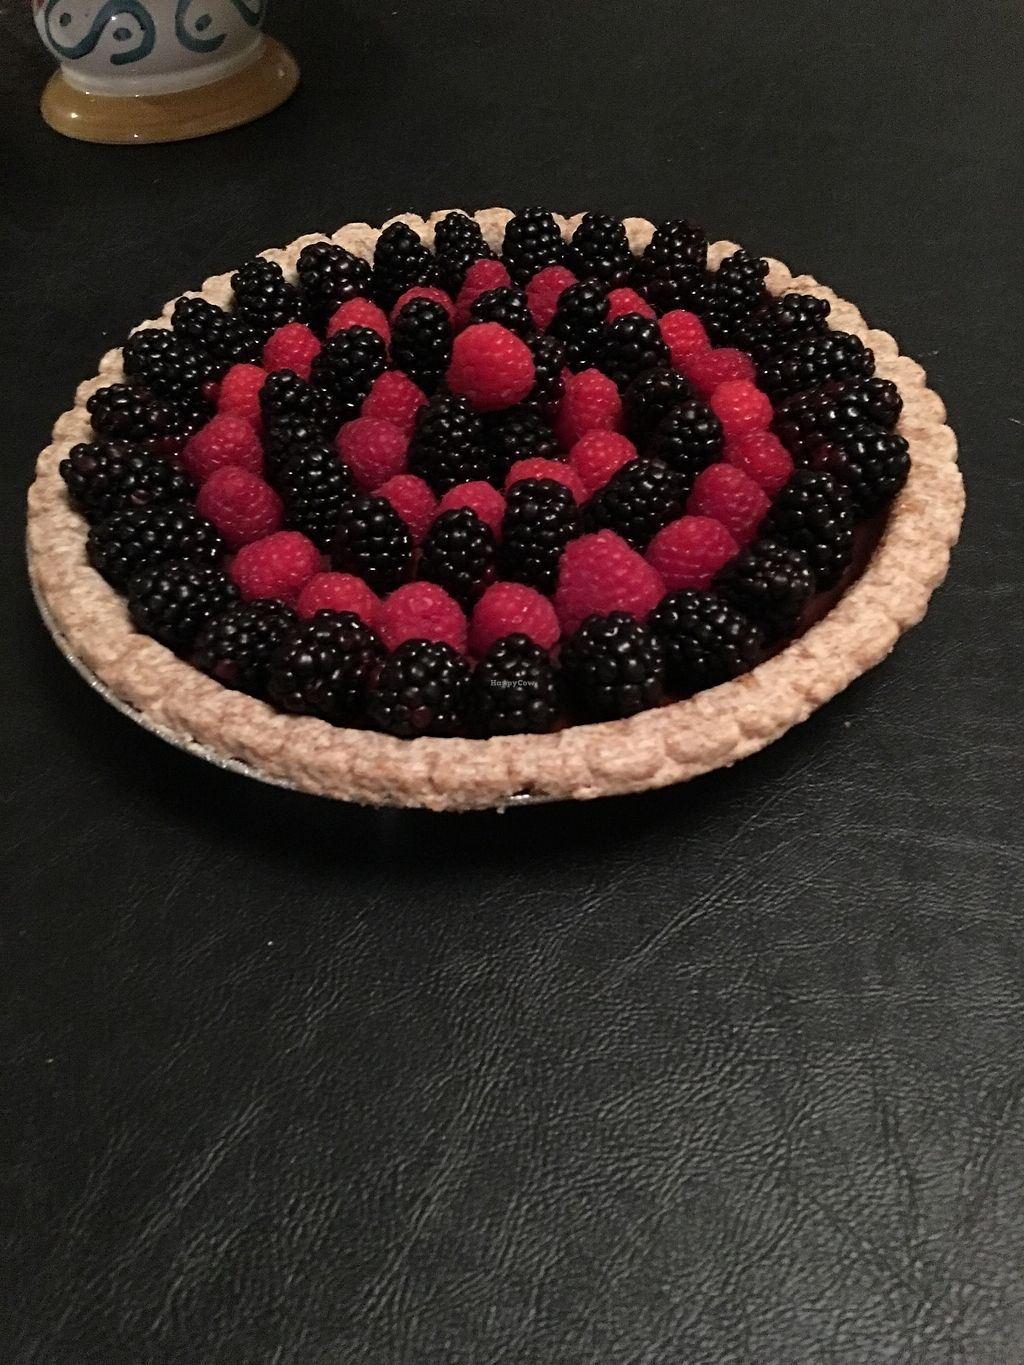 "Photo of Twilight & Lemongrass  by <a href=""/members/profile/FranceskaLynne"">FranceskaLynne</a> <br/>Vegan chocolate berry tart <br/> August 23, 2017  - <a href='/contact/abuse/image/99369/296430'>Report</a>"